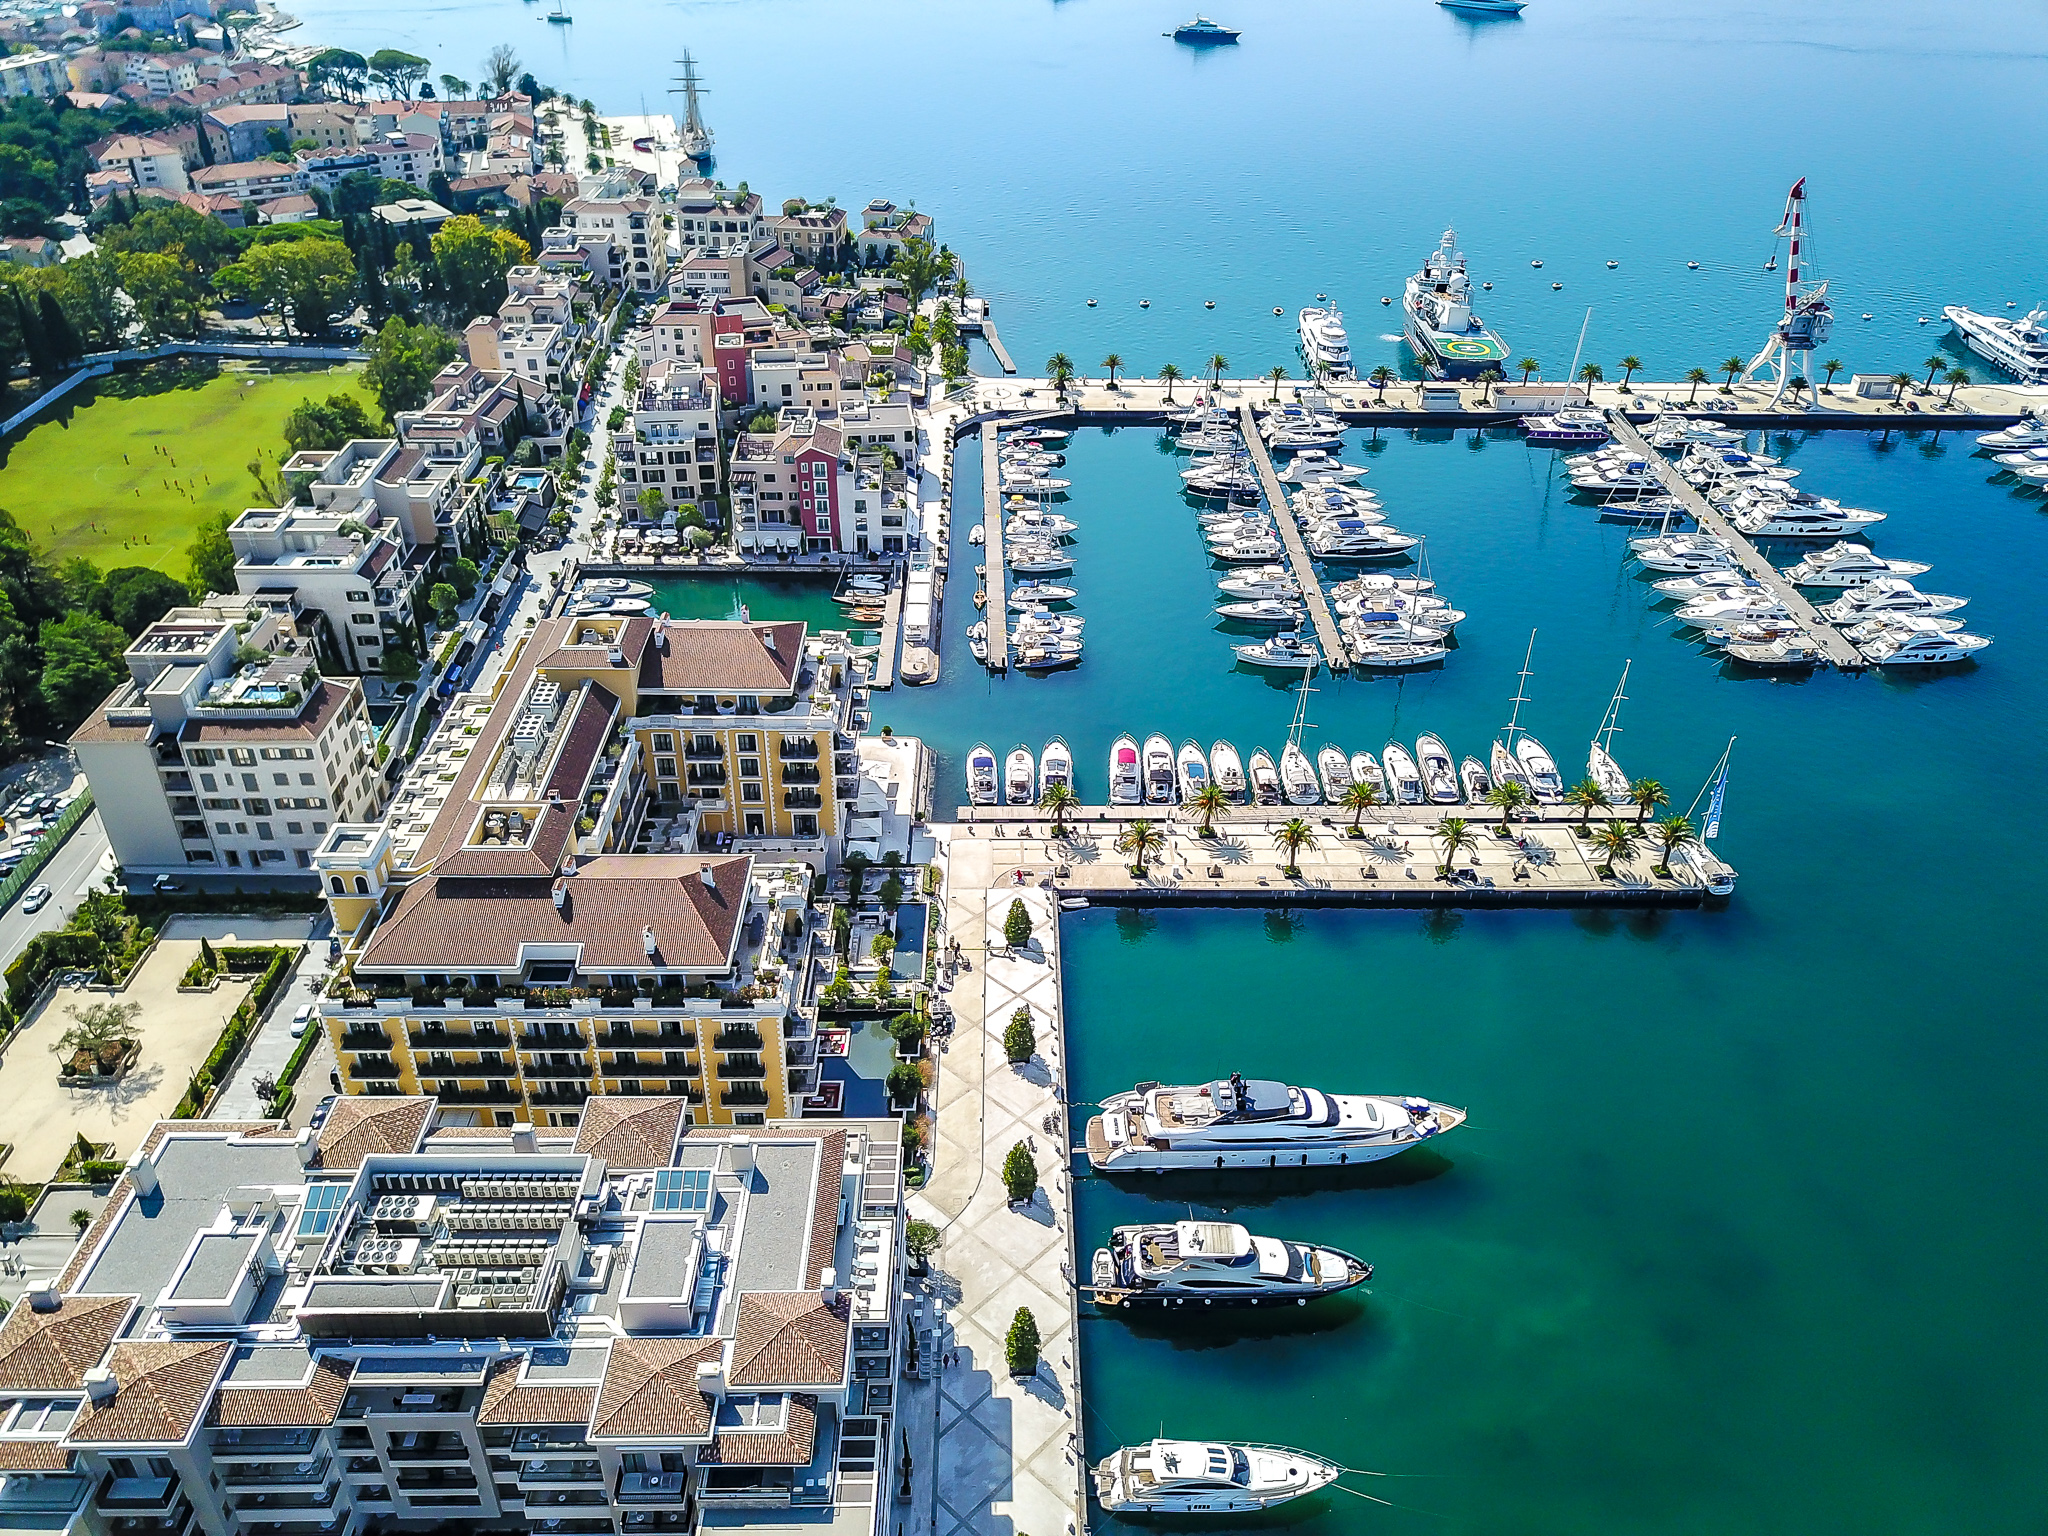 AERIAL VIEW OF PORTO MONTENEGRO AND THE HOTEL REGENT